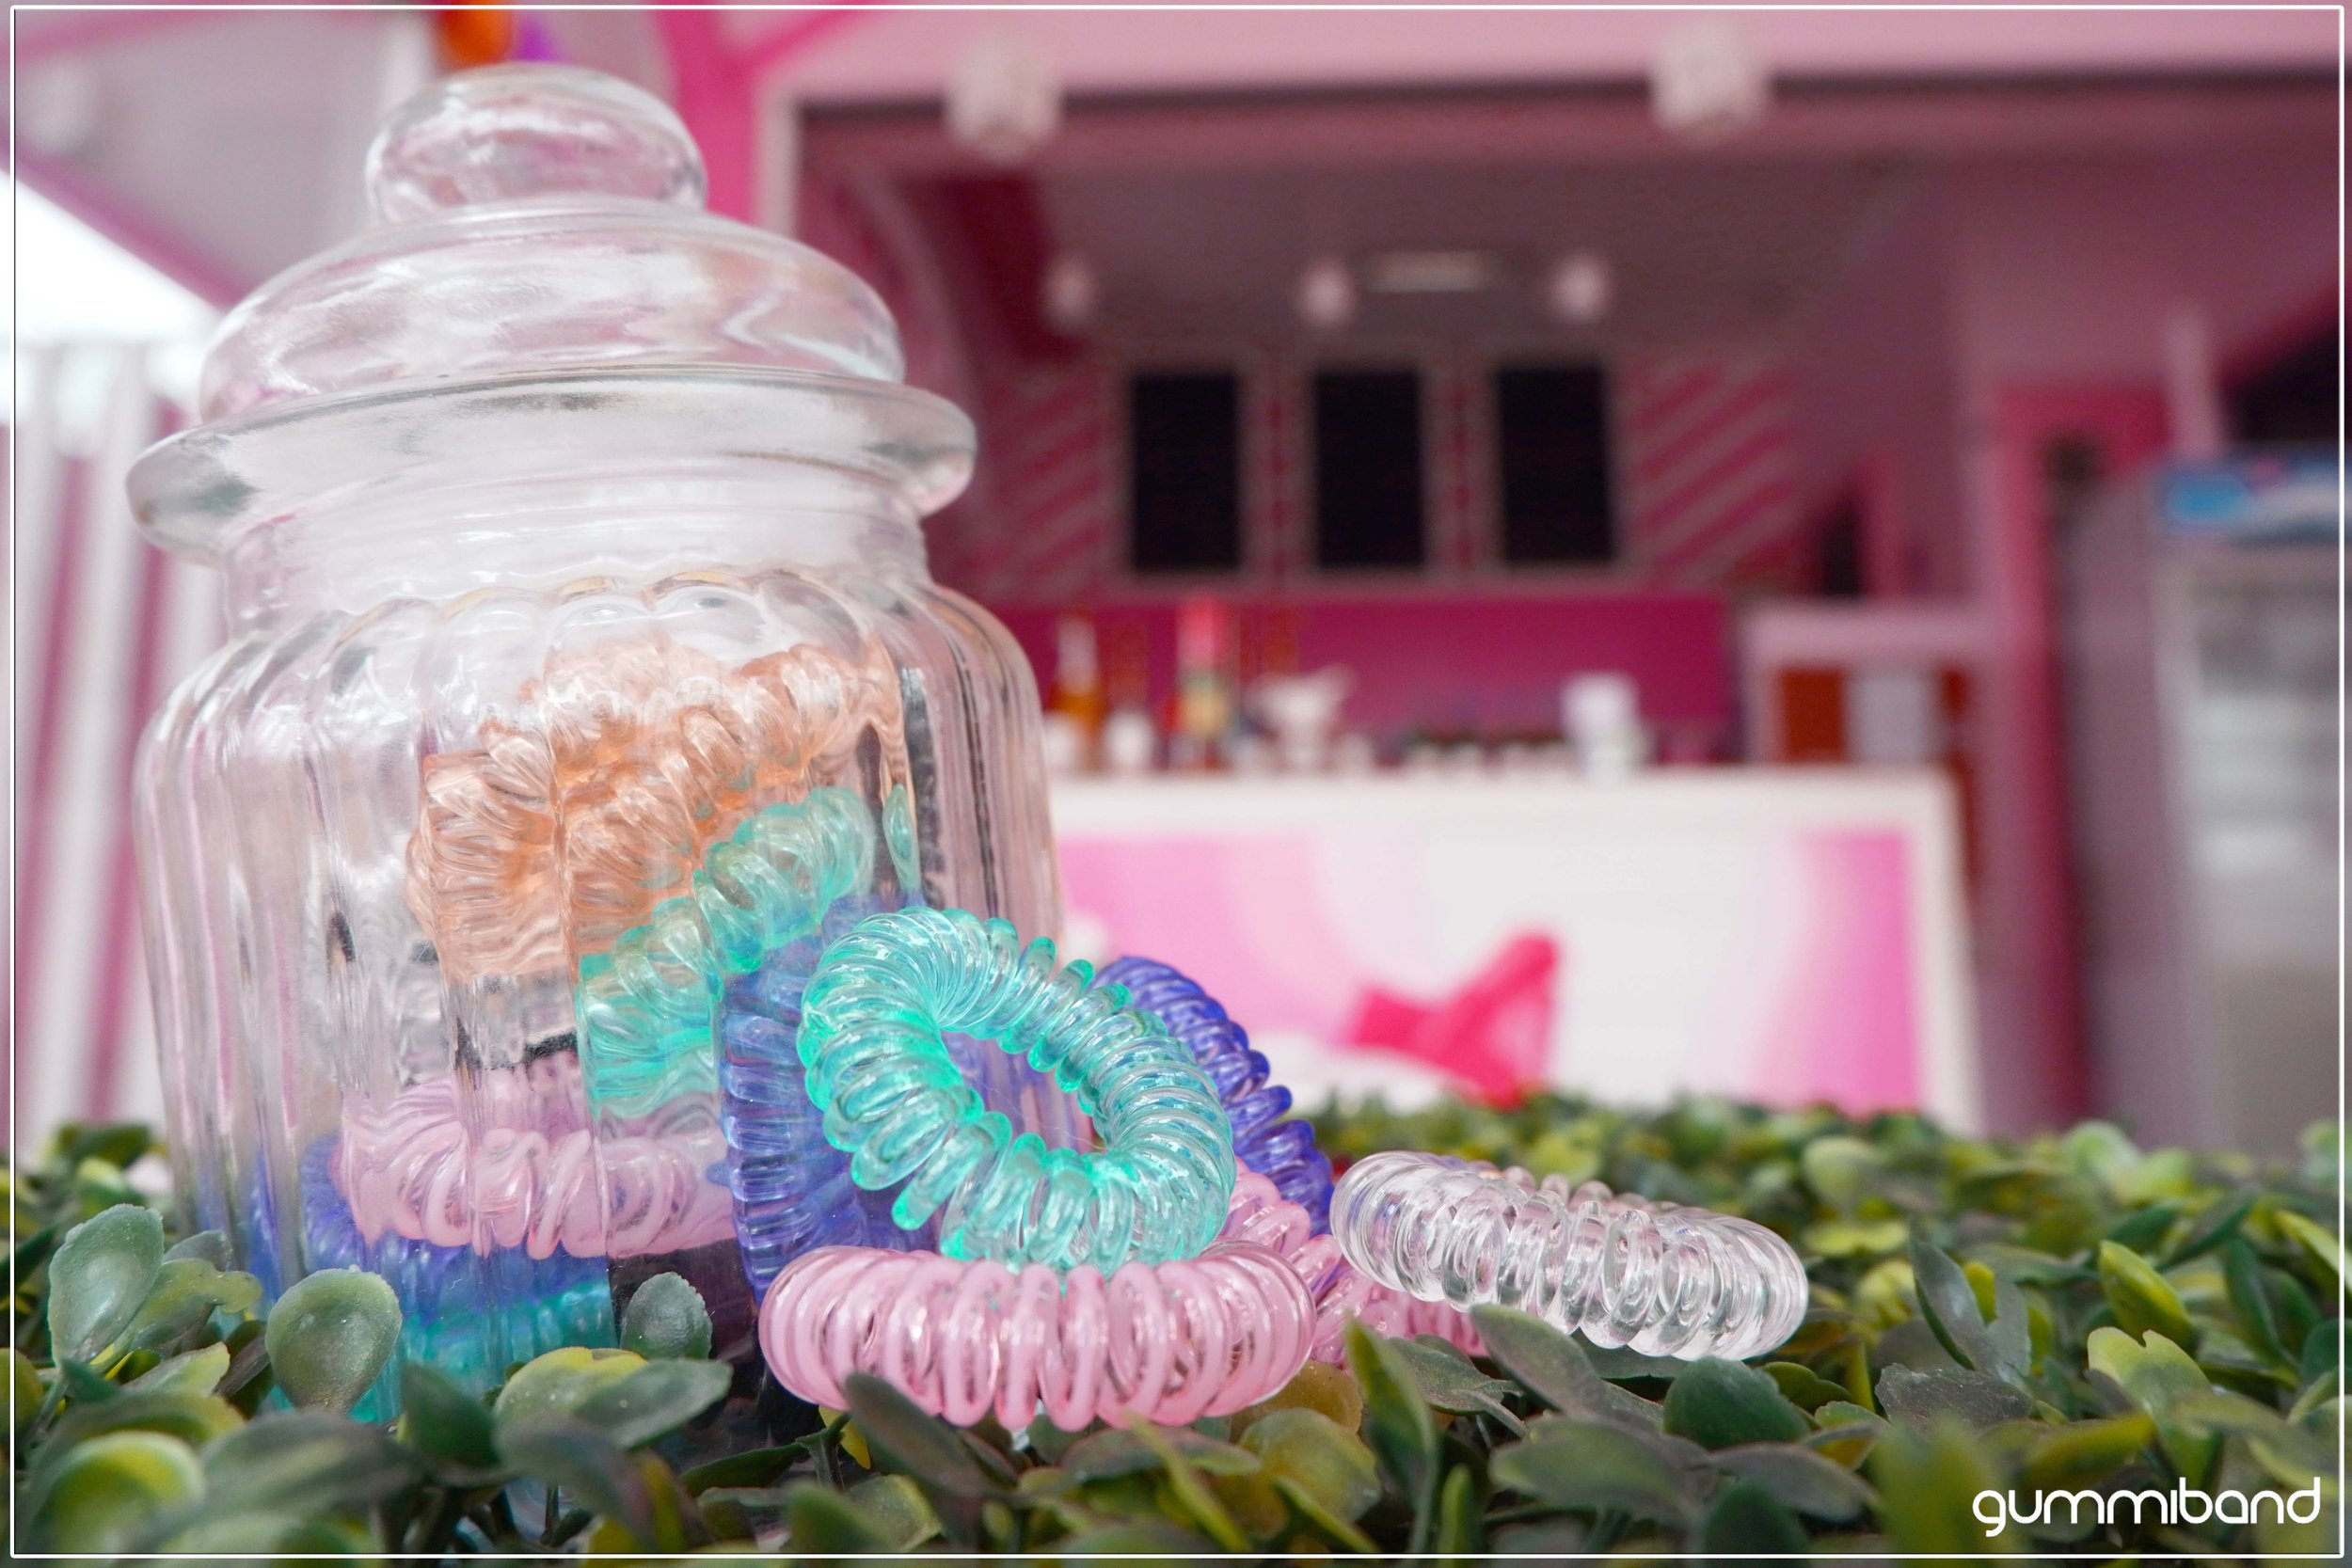 GummiBand Traceless Hair Cords in a candy jar